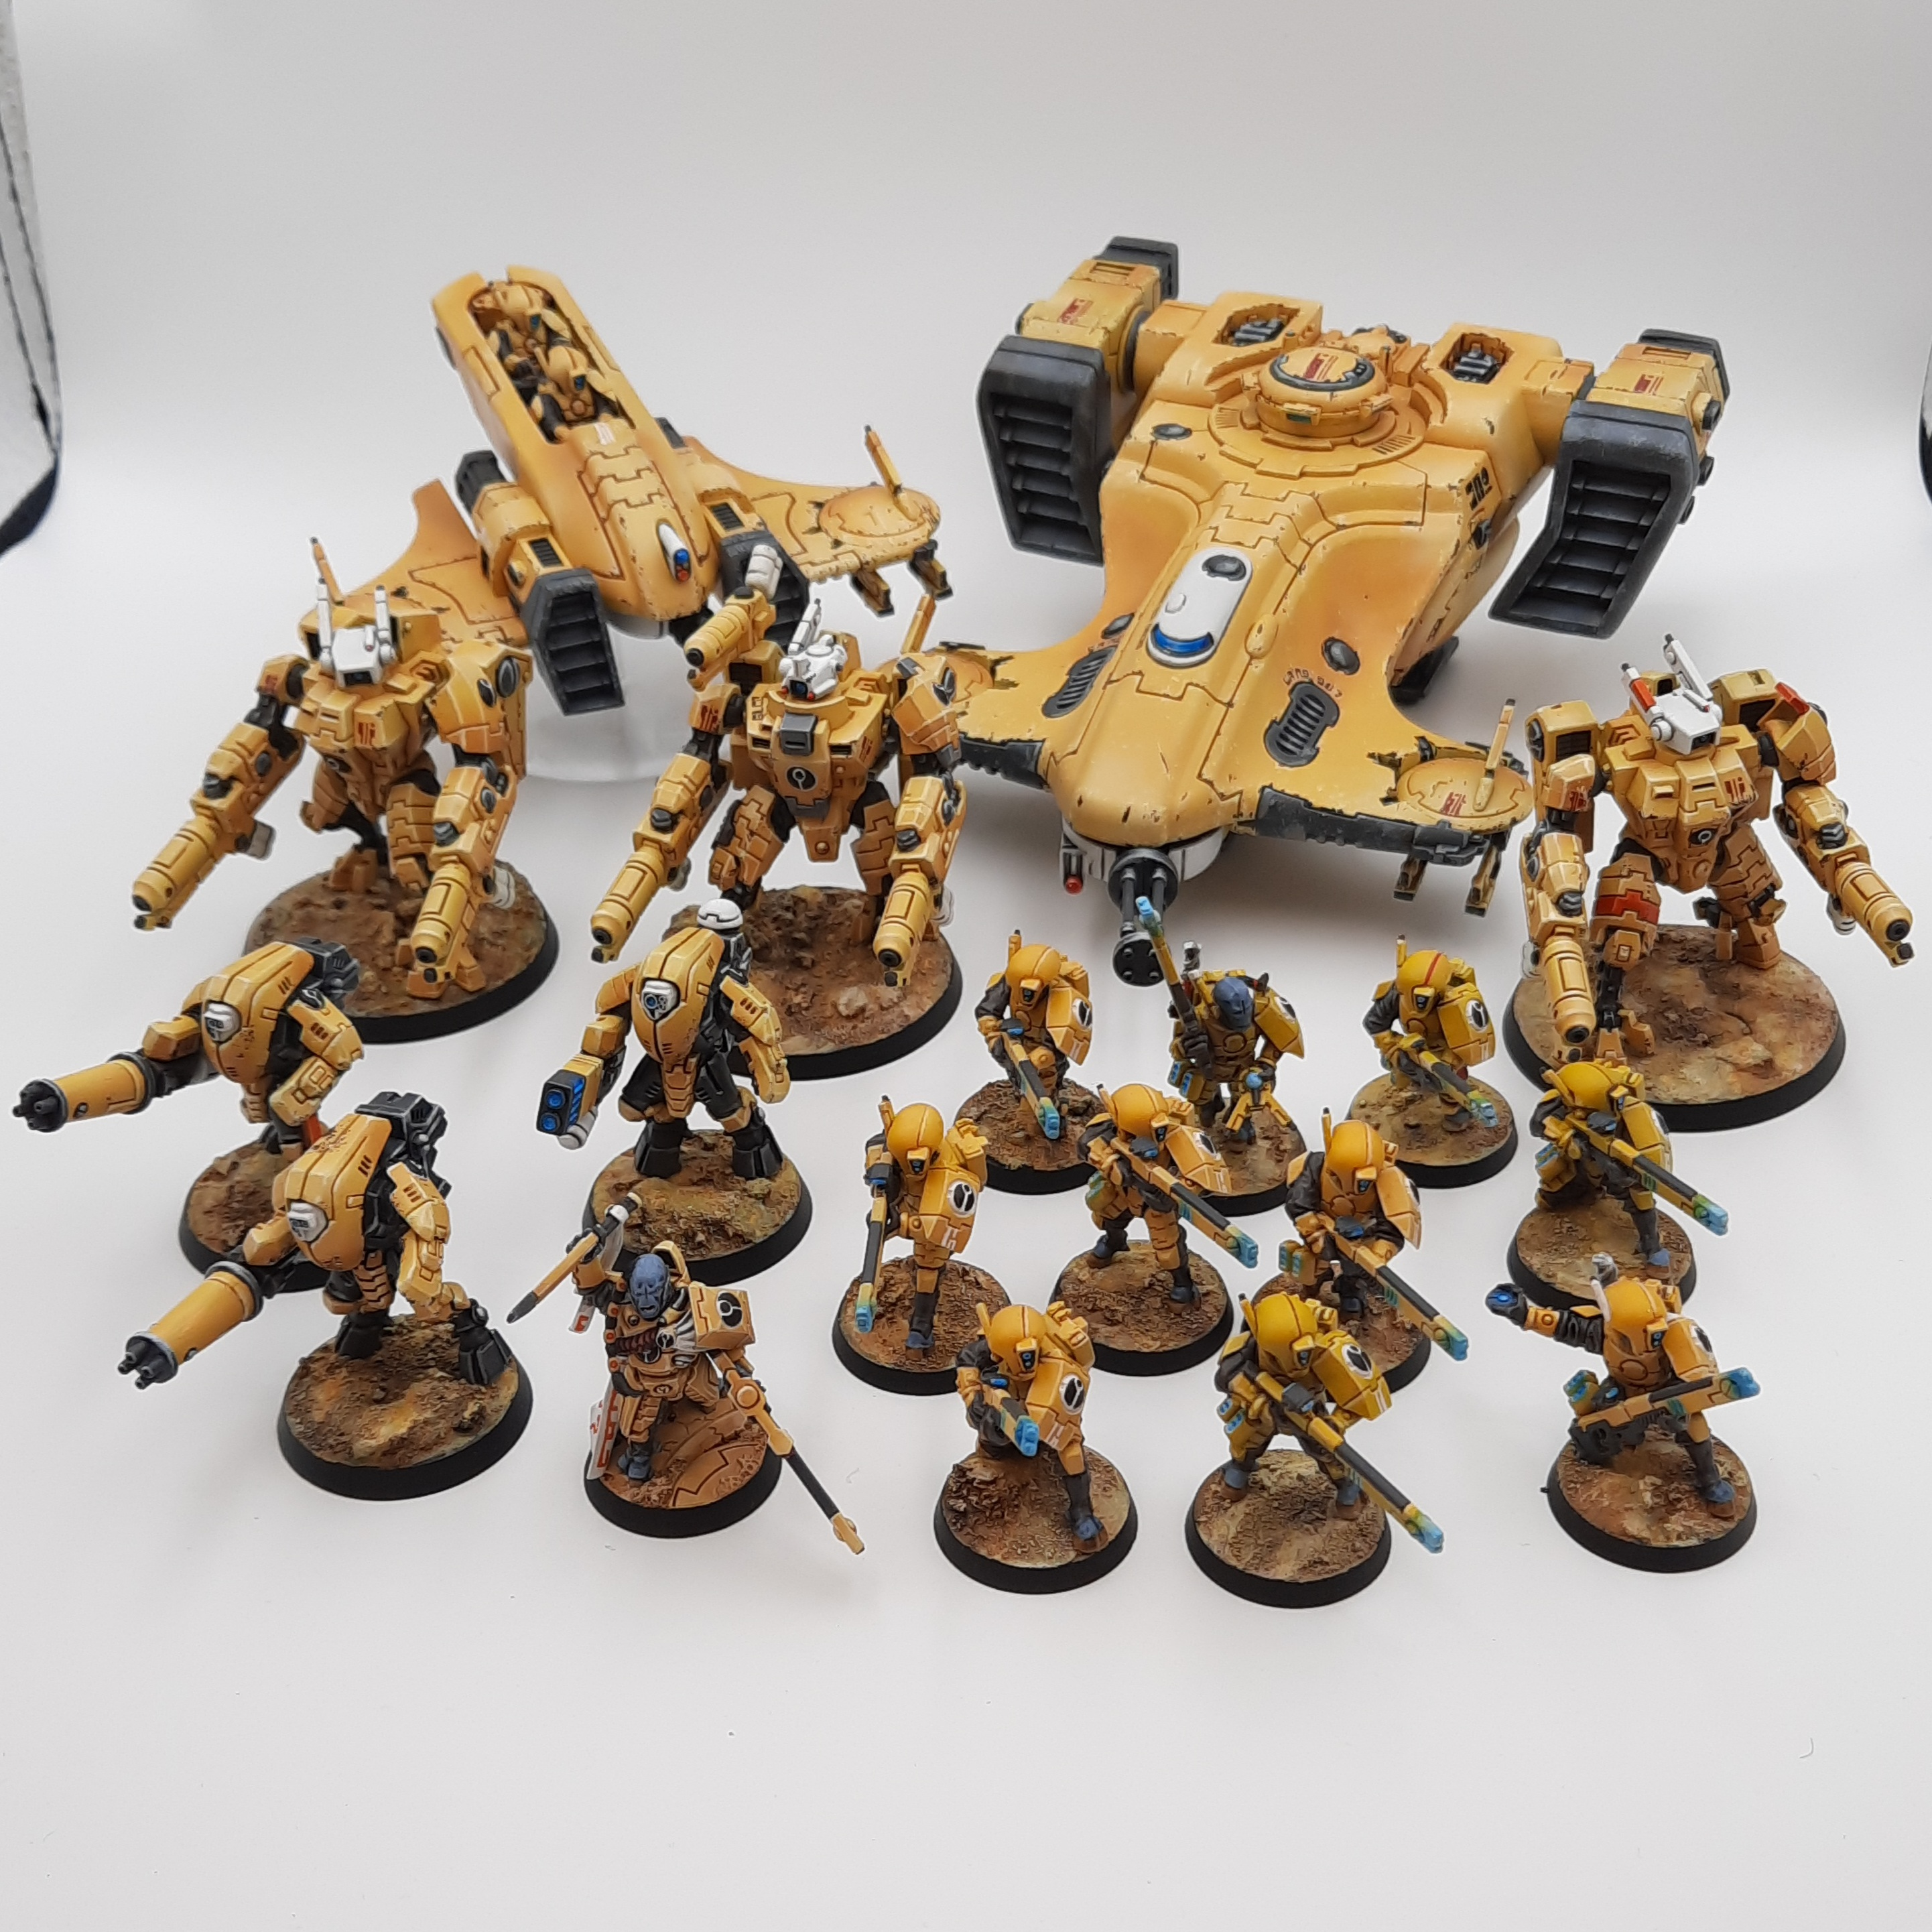 A collection of models aliens, including the battlesuits and commander above, plus line infantry and vehicles, all painted in tan and white.